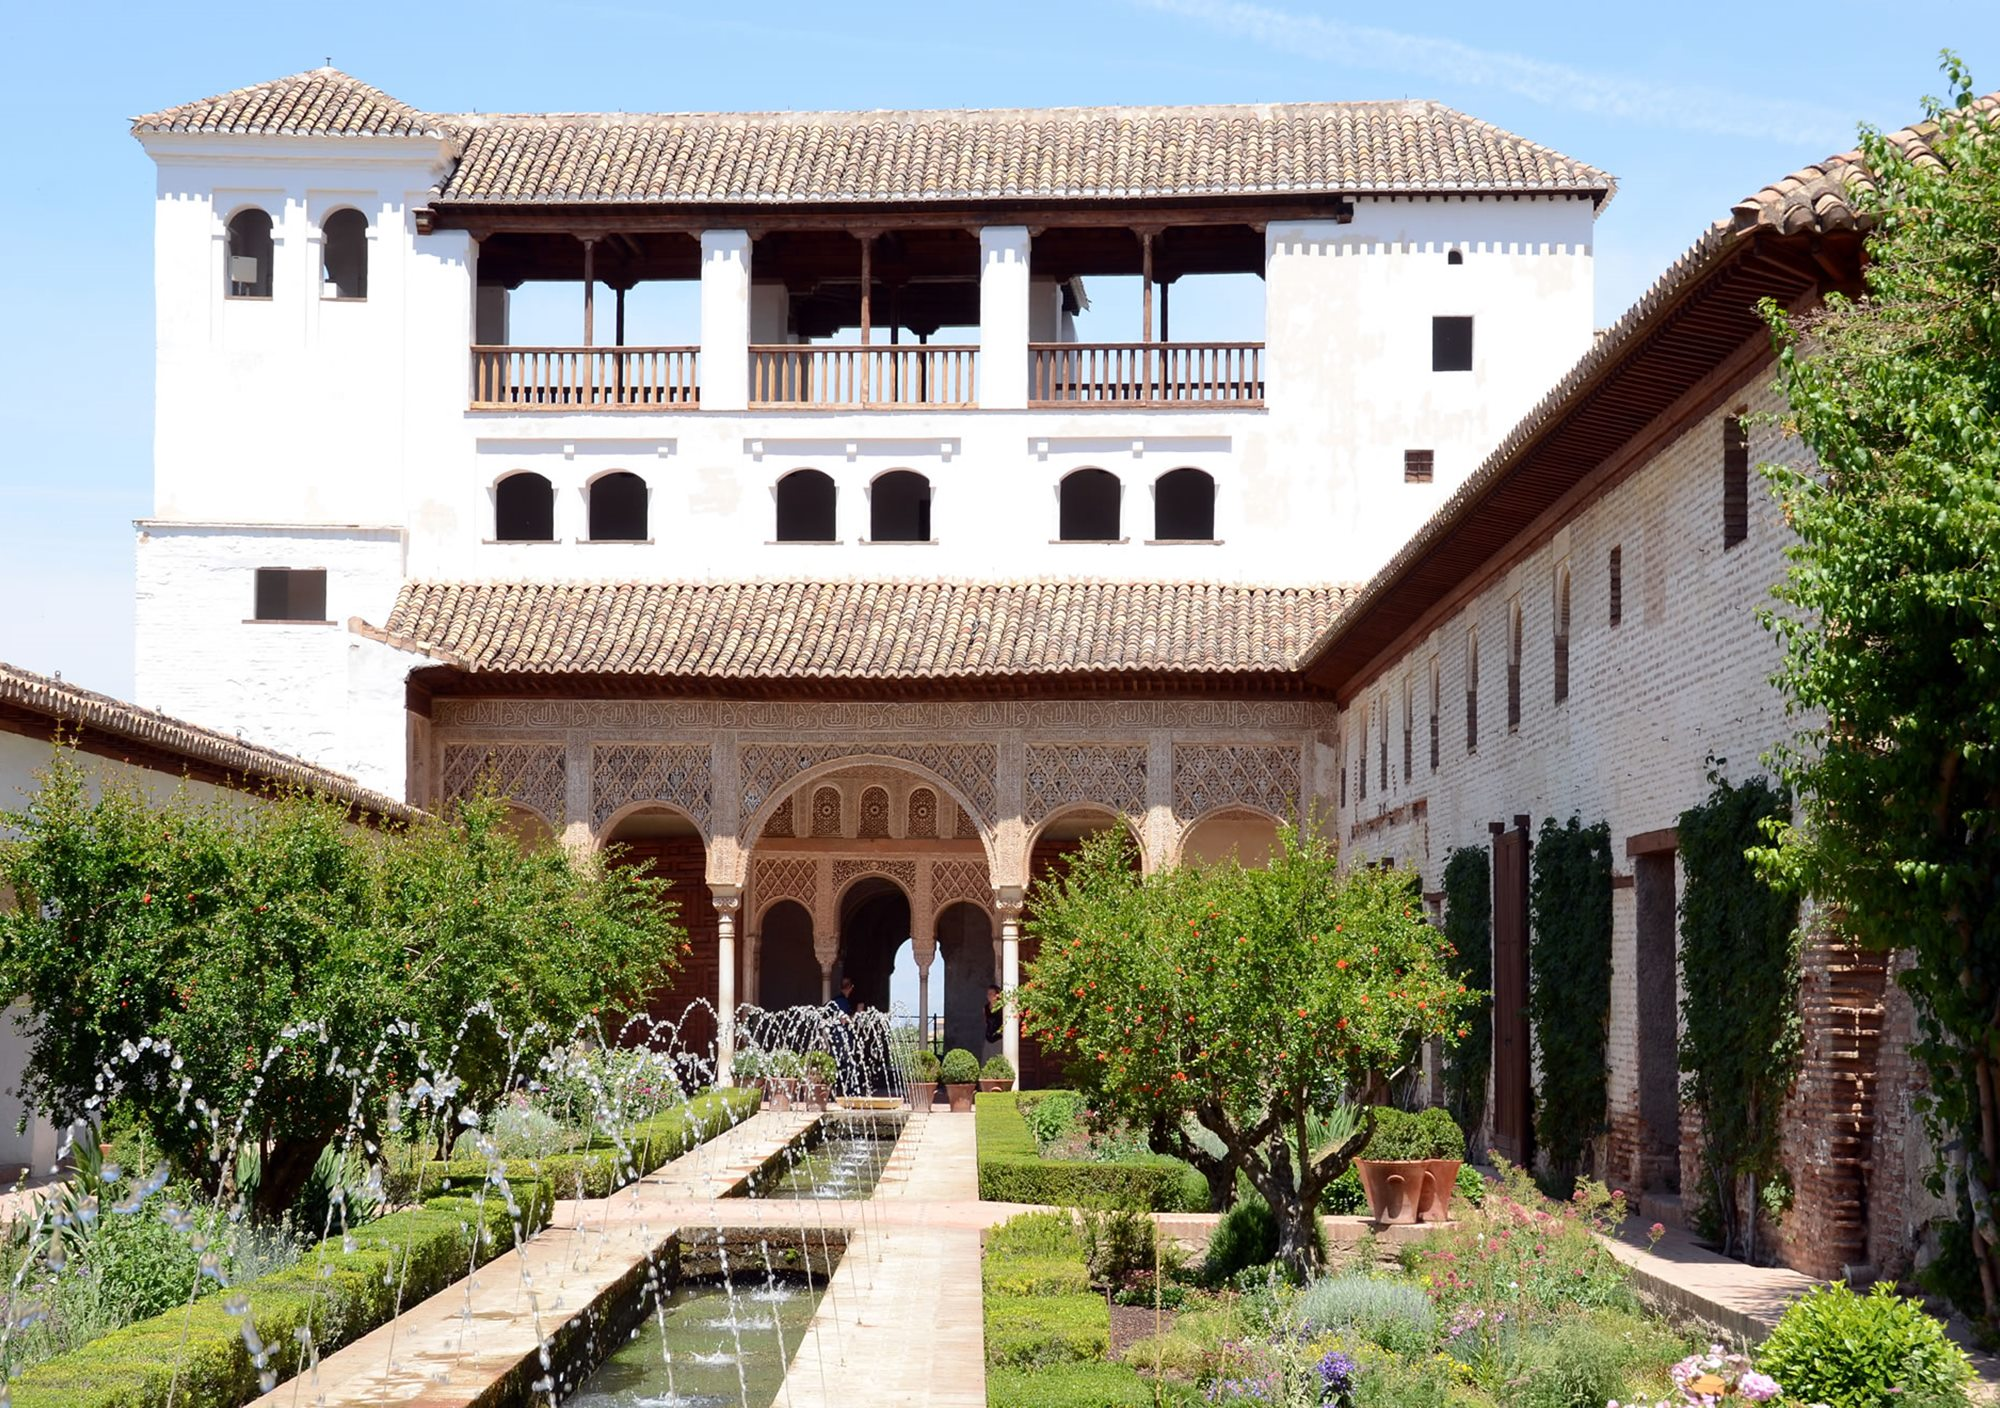 Get book reserve guided tour exploring the Alhambra and the Generalife